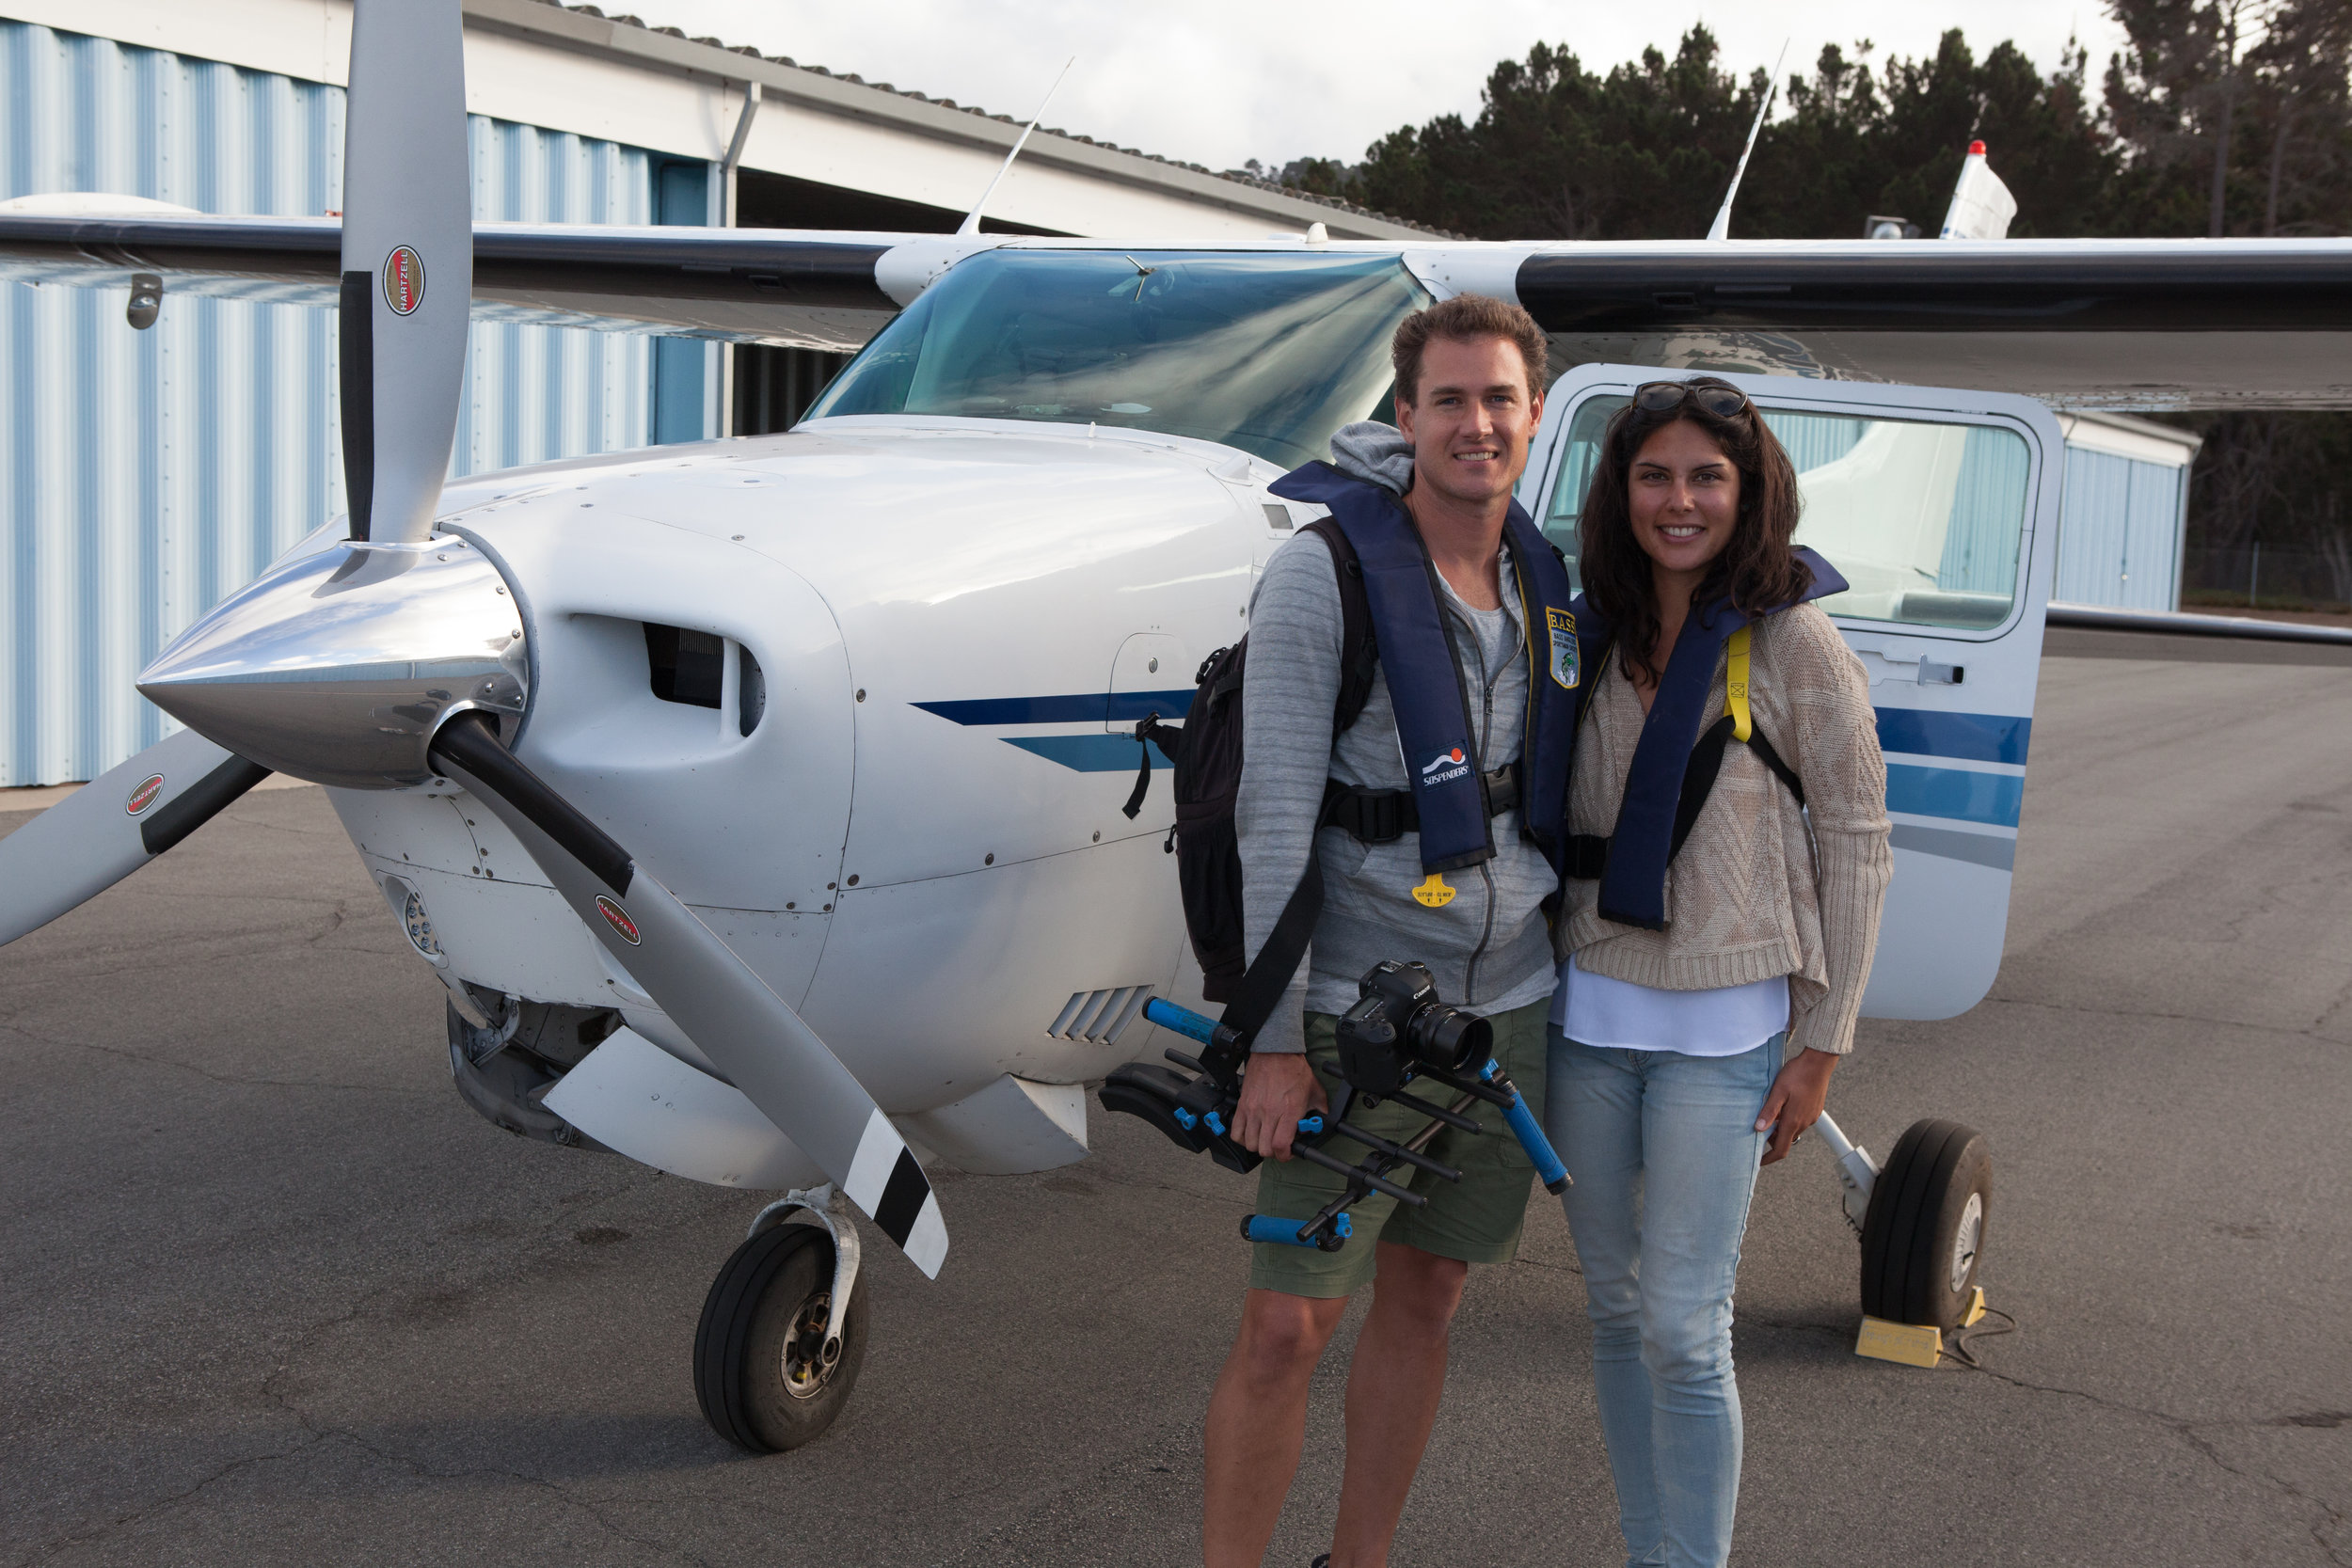 Co-Directors James Sherwood and Danielle Ryan ready to take their first flight with Mike Sutton over California's marine protected area in 2015.